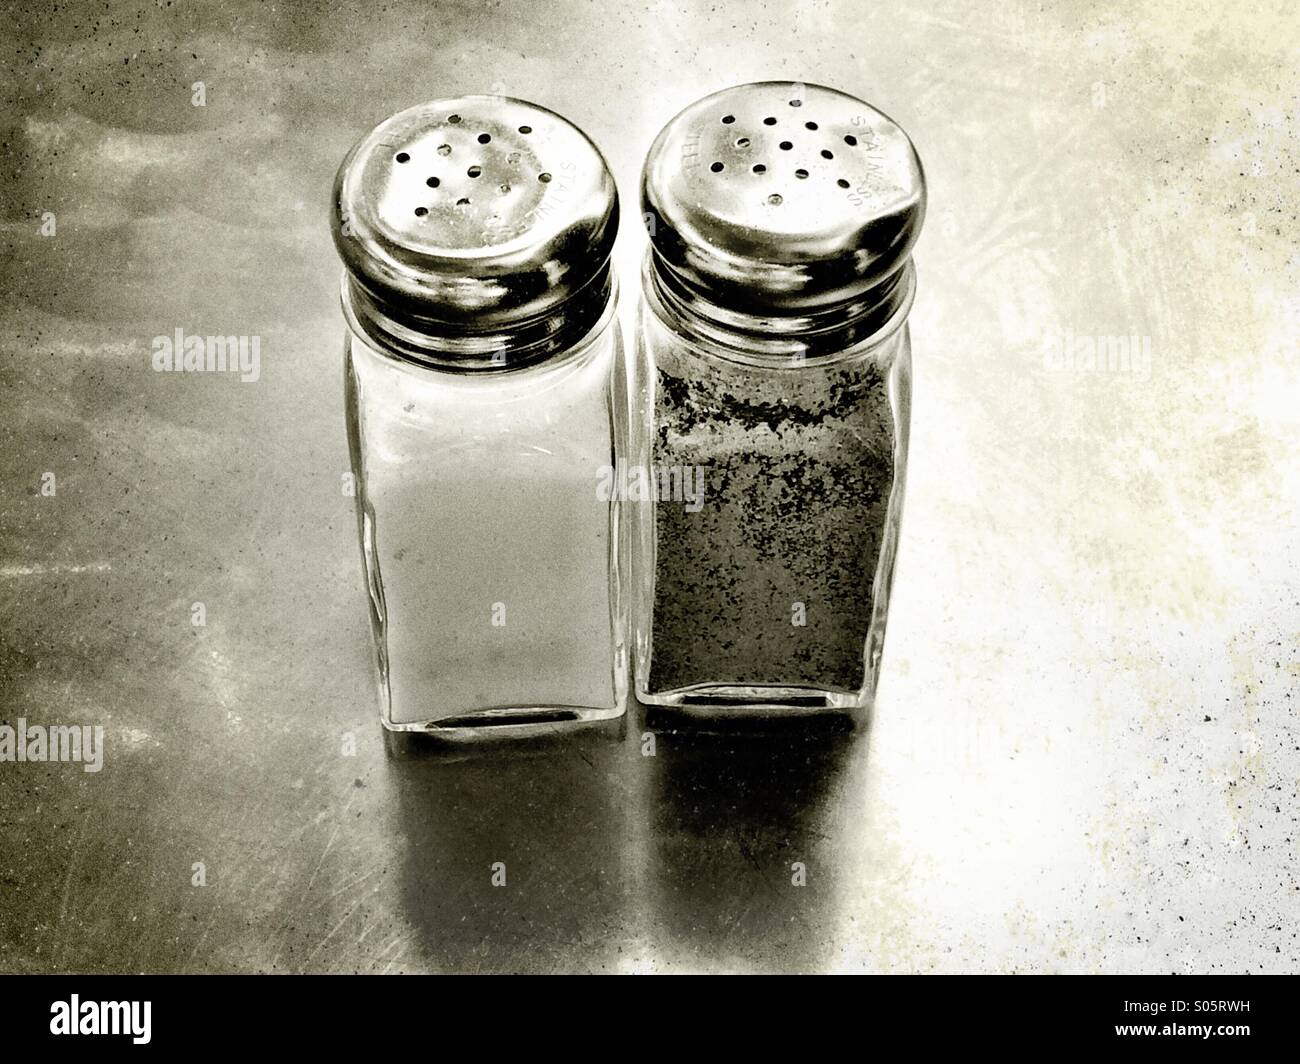 salt-and-pepper-shakers-S05RWH.jpg